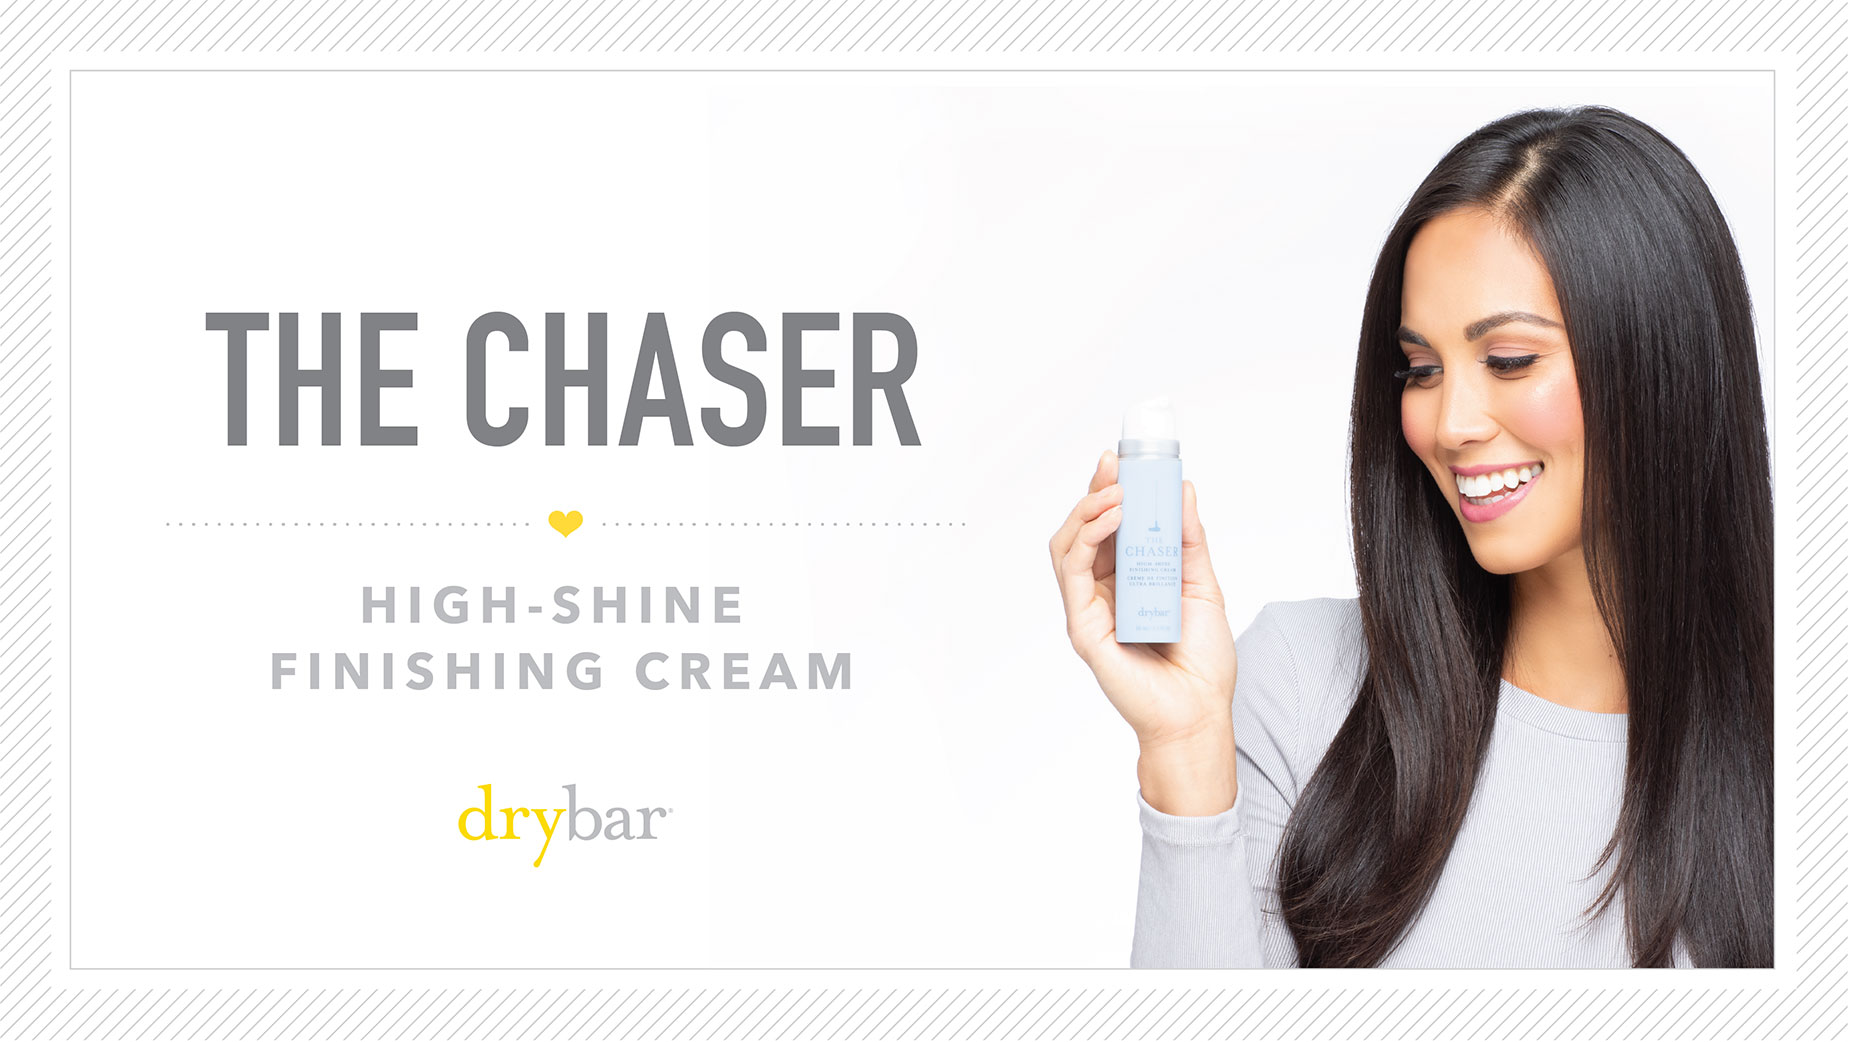 The Chaser High-Shine Finishing Cream Video